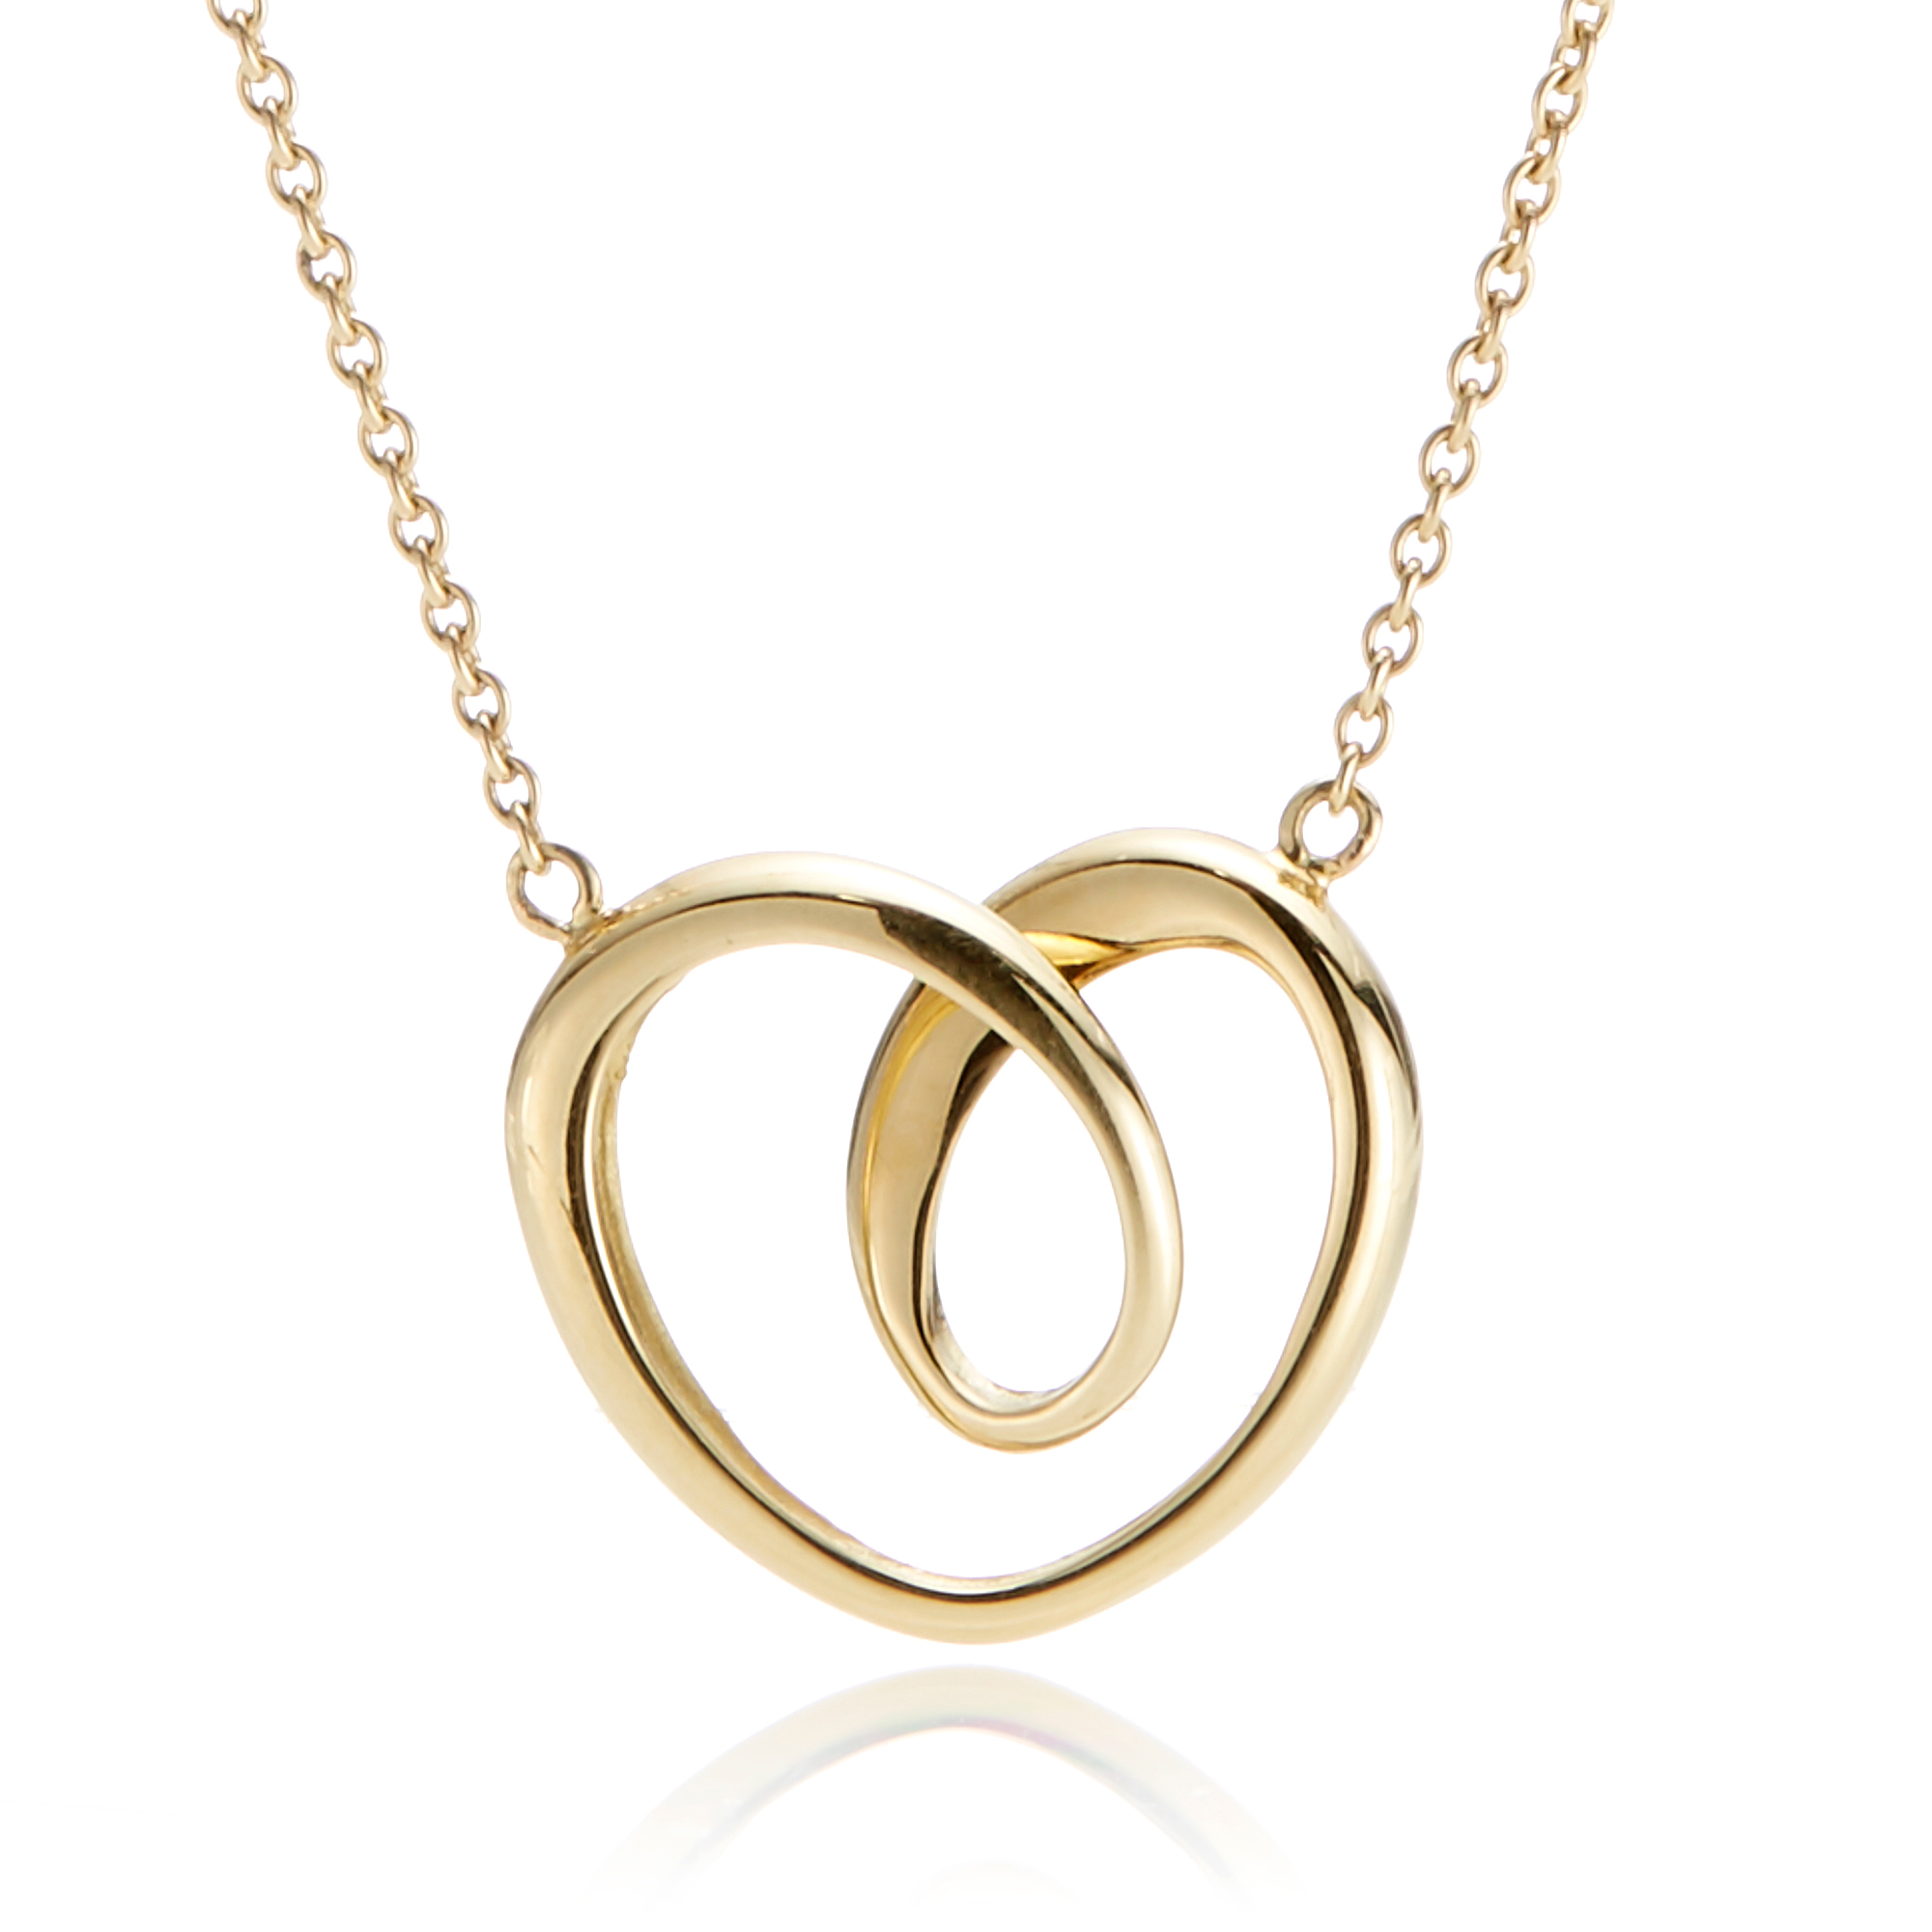 Georg Jensen Large Gold Heart Necklace